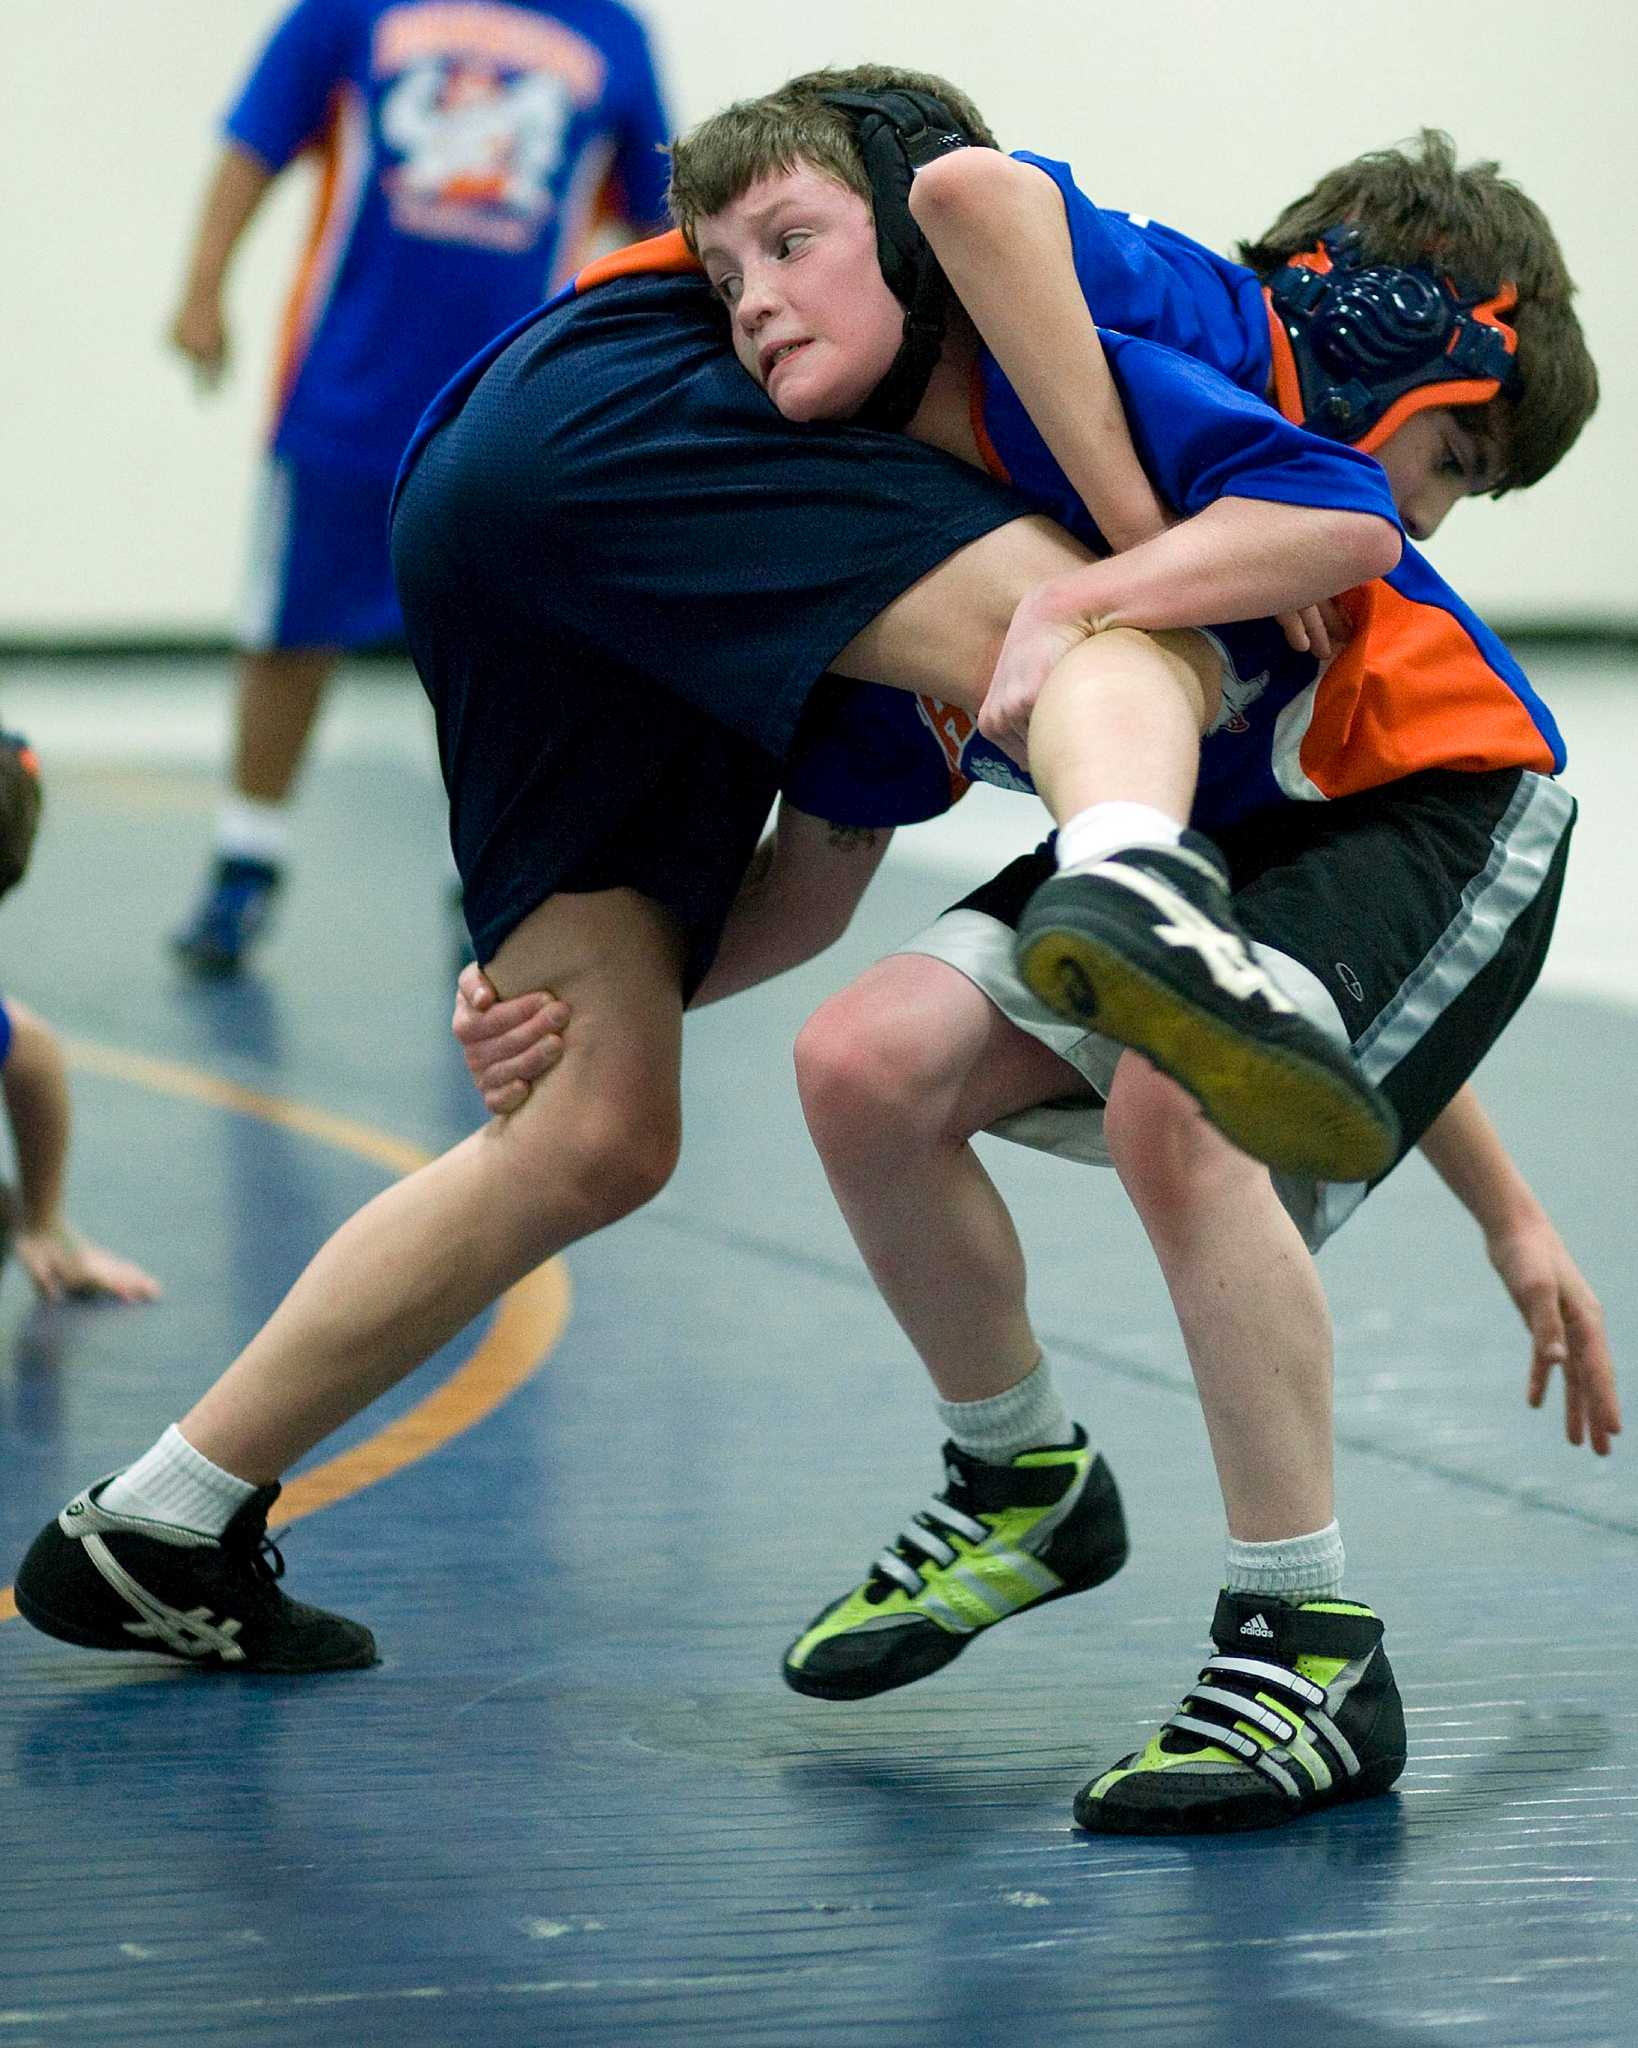 Hatter Factory Danbury S Youth Wrestling Programs Are